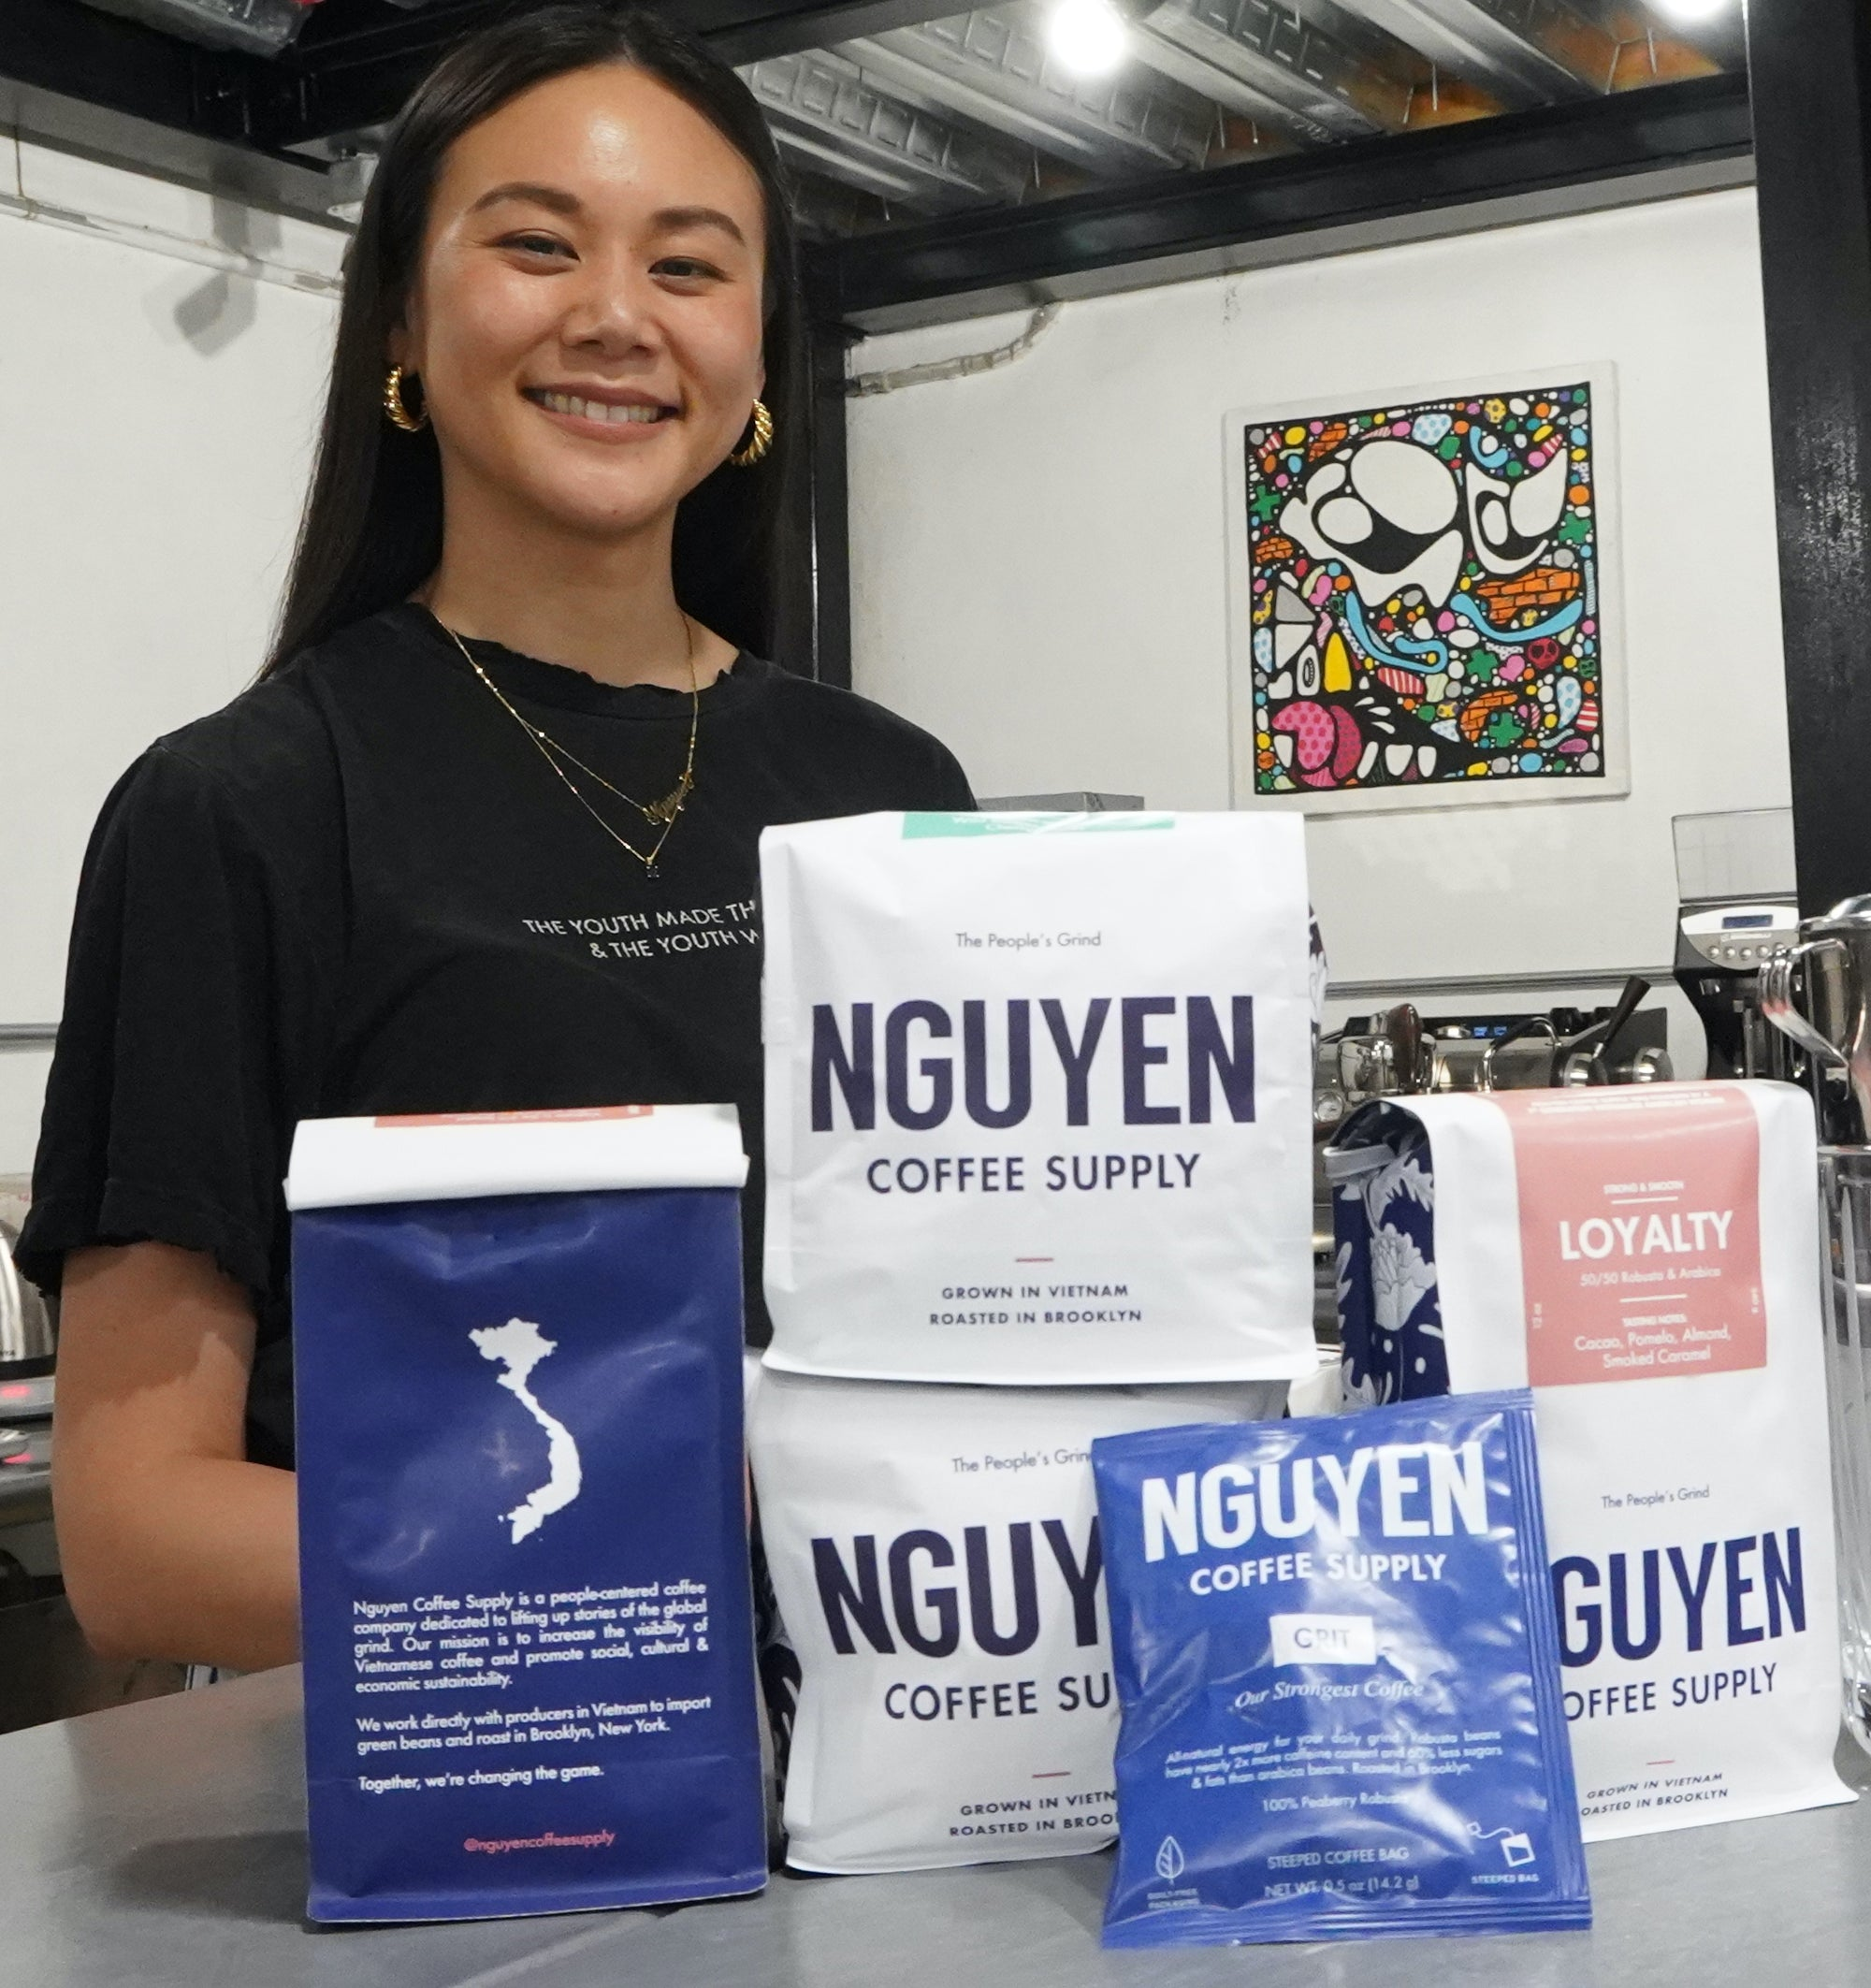 Nguyen Coffee Supply Featured in Người Việt Daily News